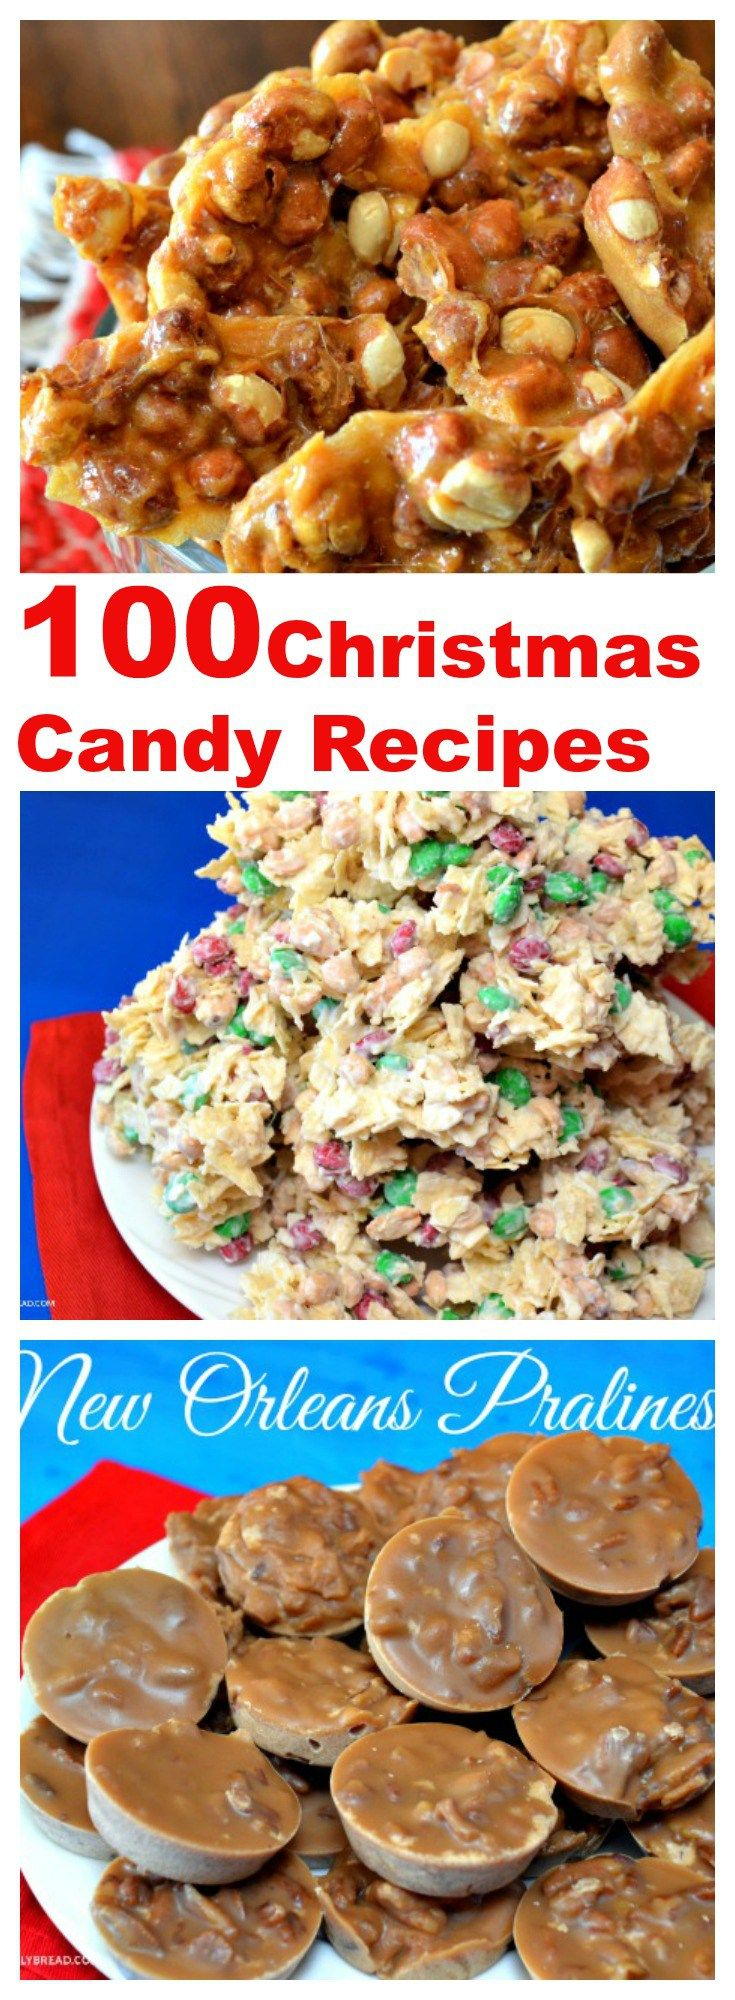 BEST CHRISTMAS CANY RECIPES  One of my favorite things to do during the Christmas season is making candy.  I can never get enough Christmas Candy Recipes.   SEE RECIPES HERE: http://recipesforourdailybread.com/christmas-candy-recipes/